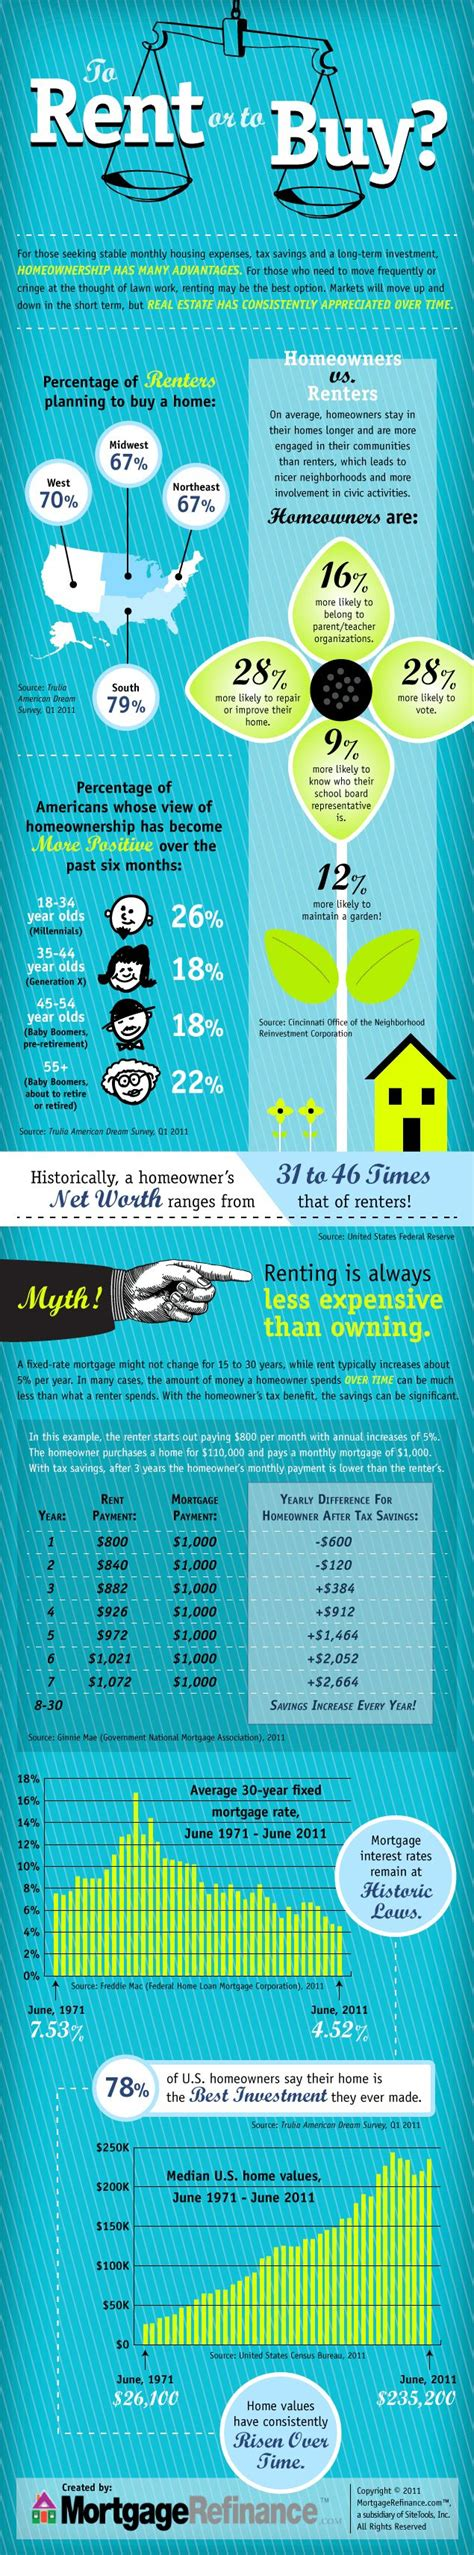 how to rent to buy a house to rent or to buy a house infographic zone pinterest